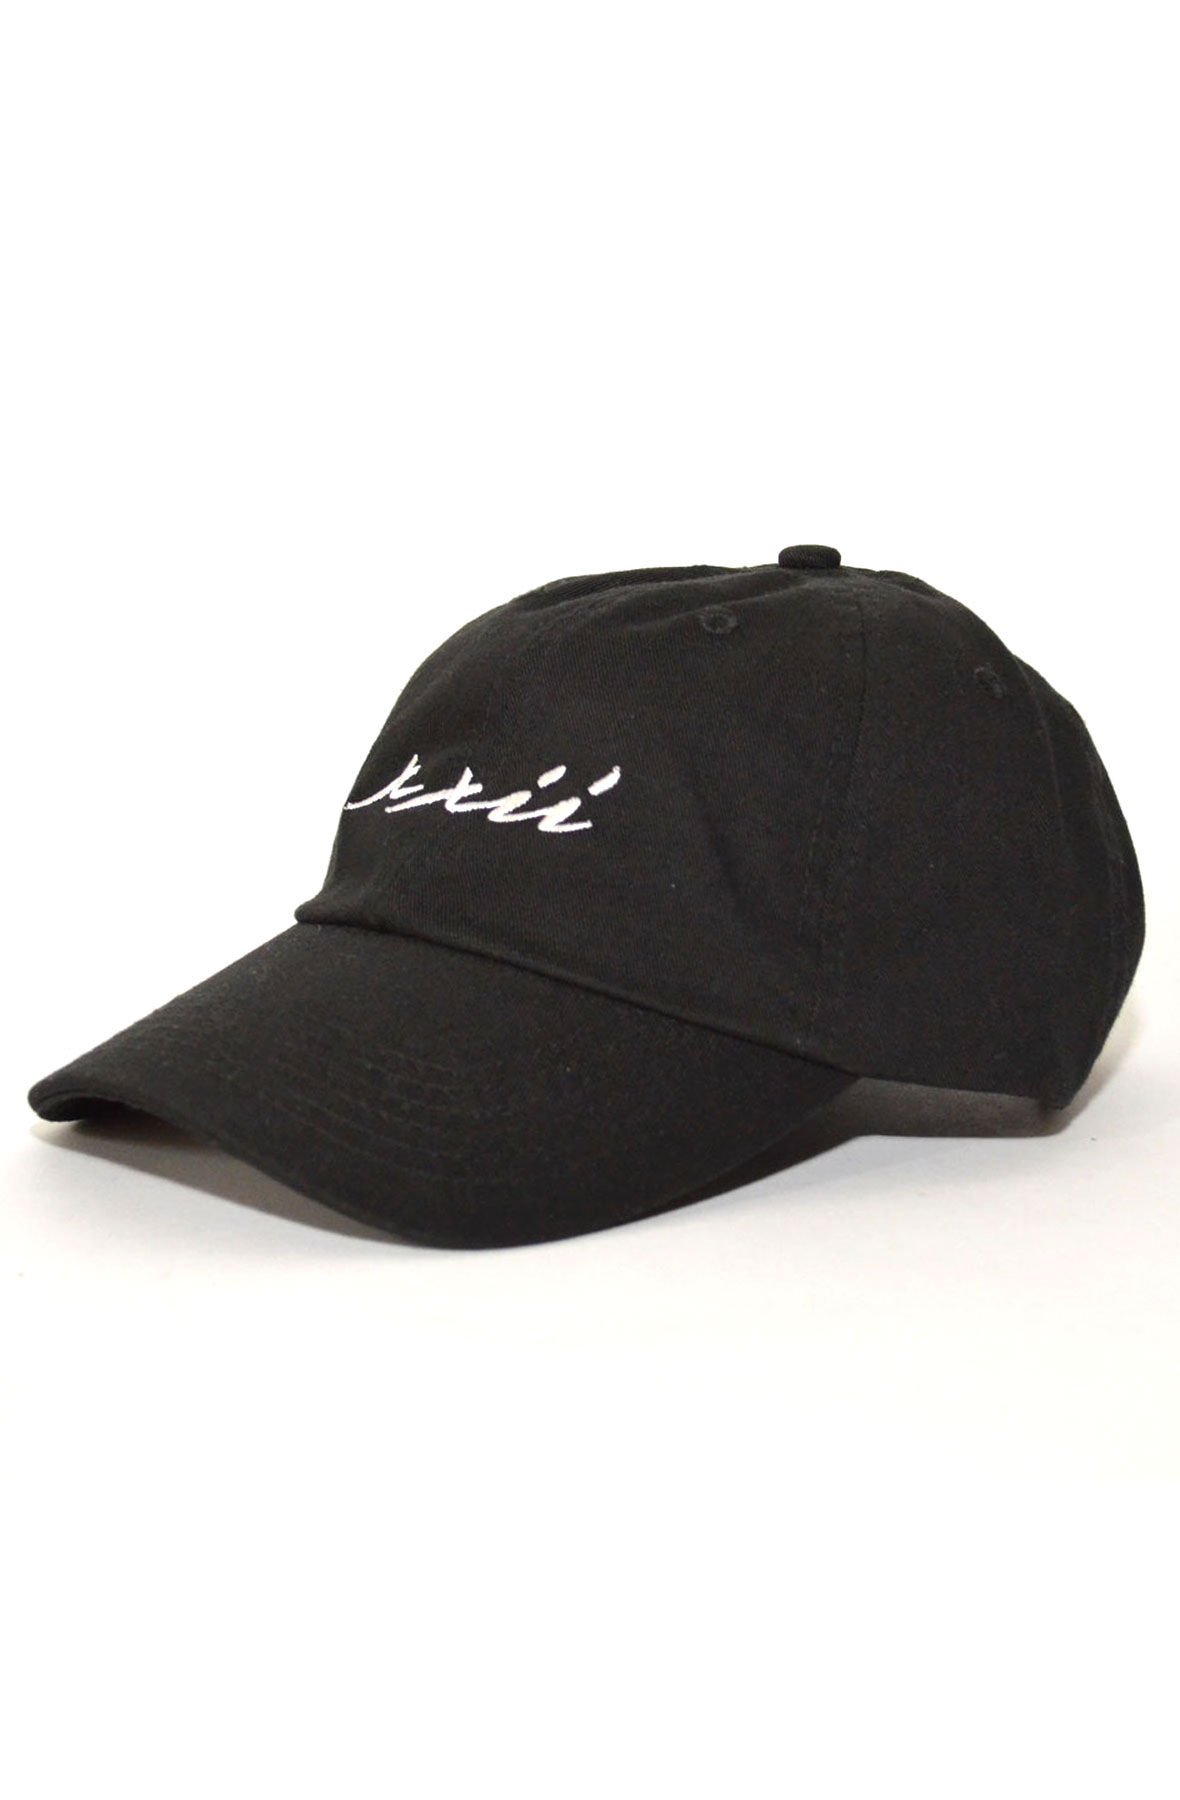 Image of XXII Dad Hat in Black and White